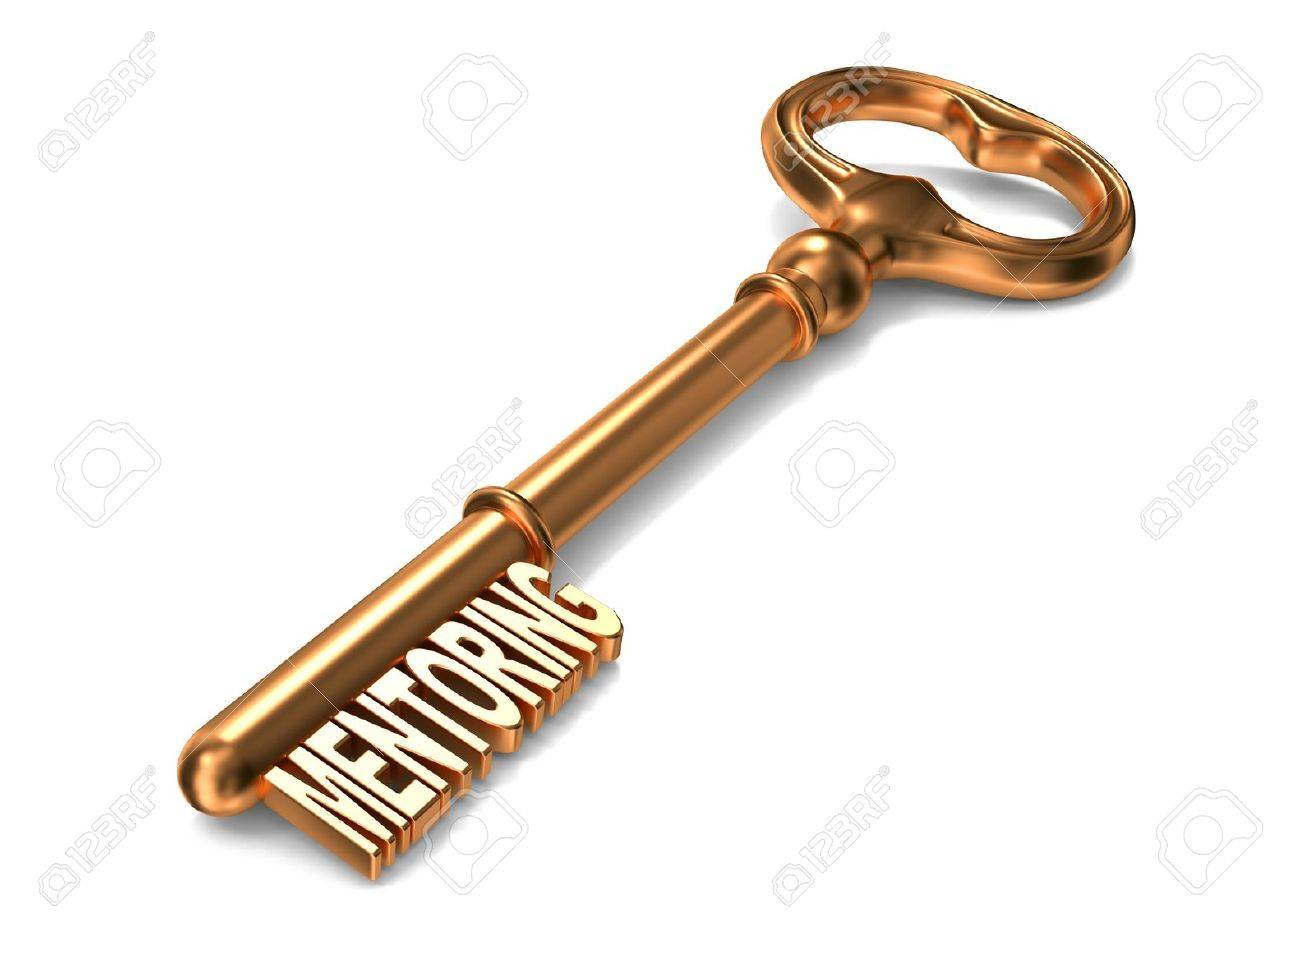 With golden key 3d rendering plan concept with golden key 3d rendering - Mentoring Golden Key On White Background 3d Render Business Concept Stock Photo